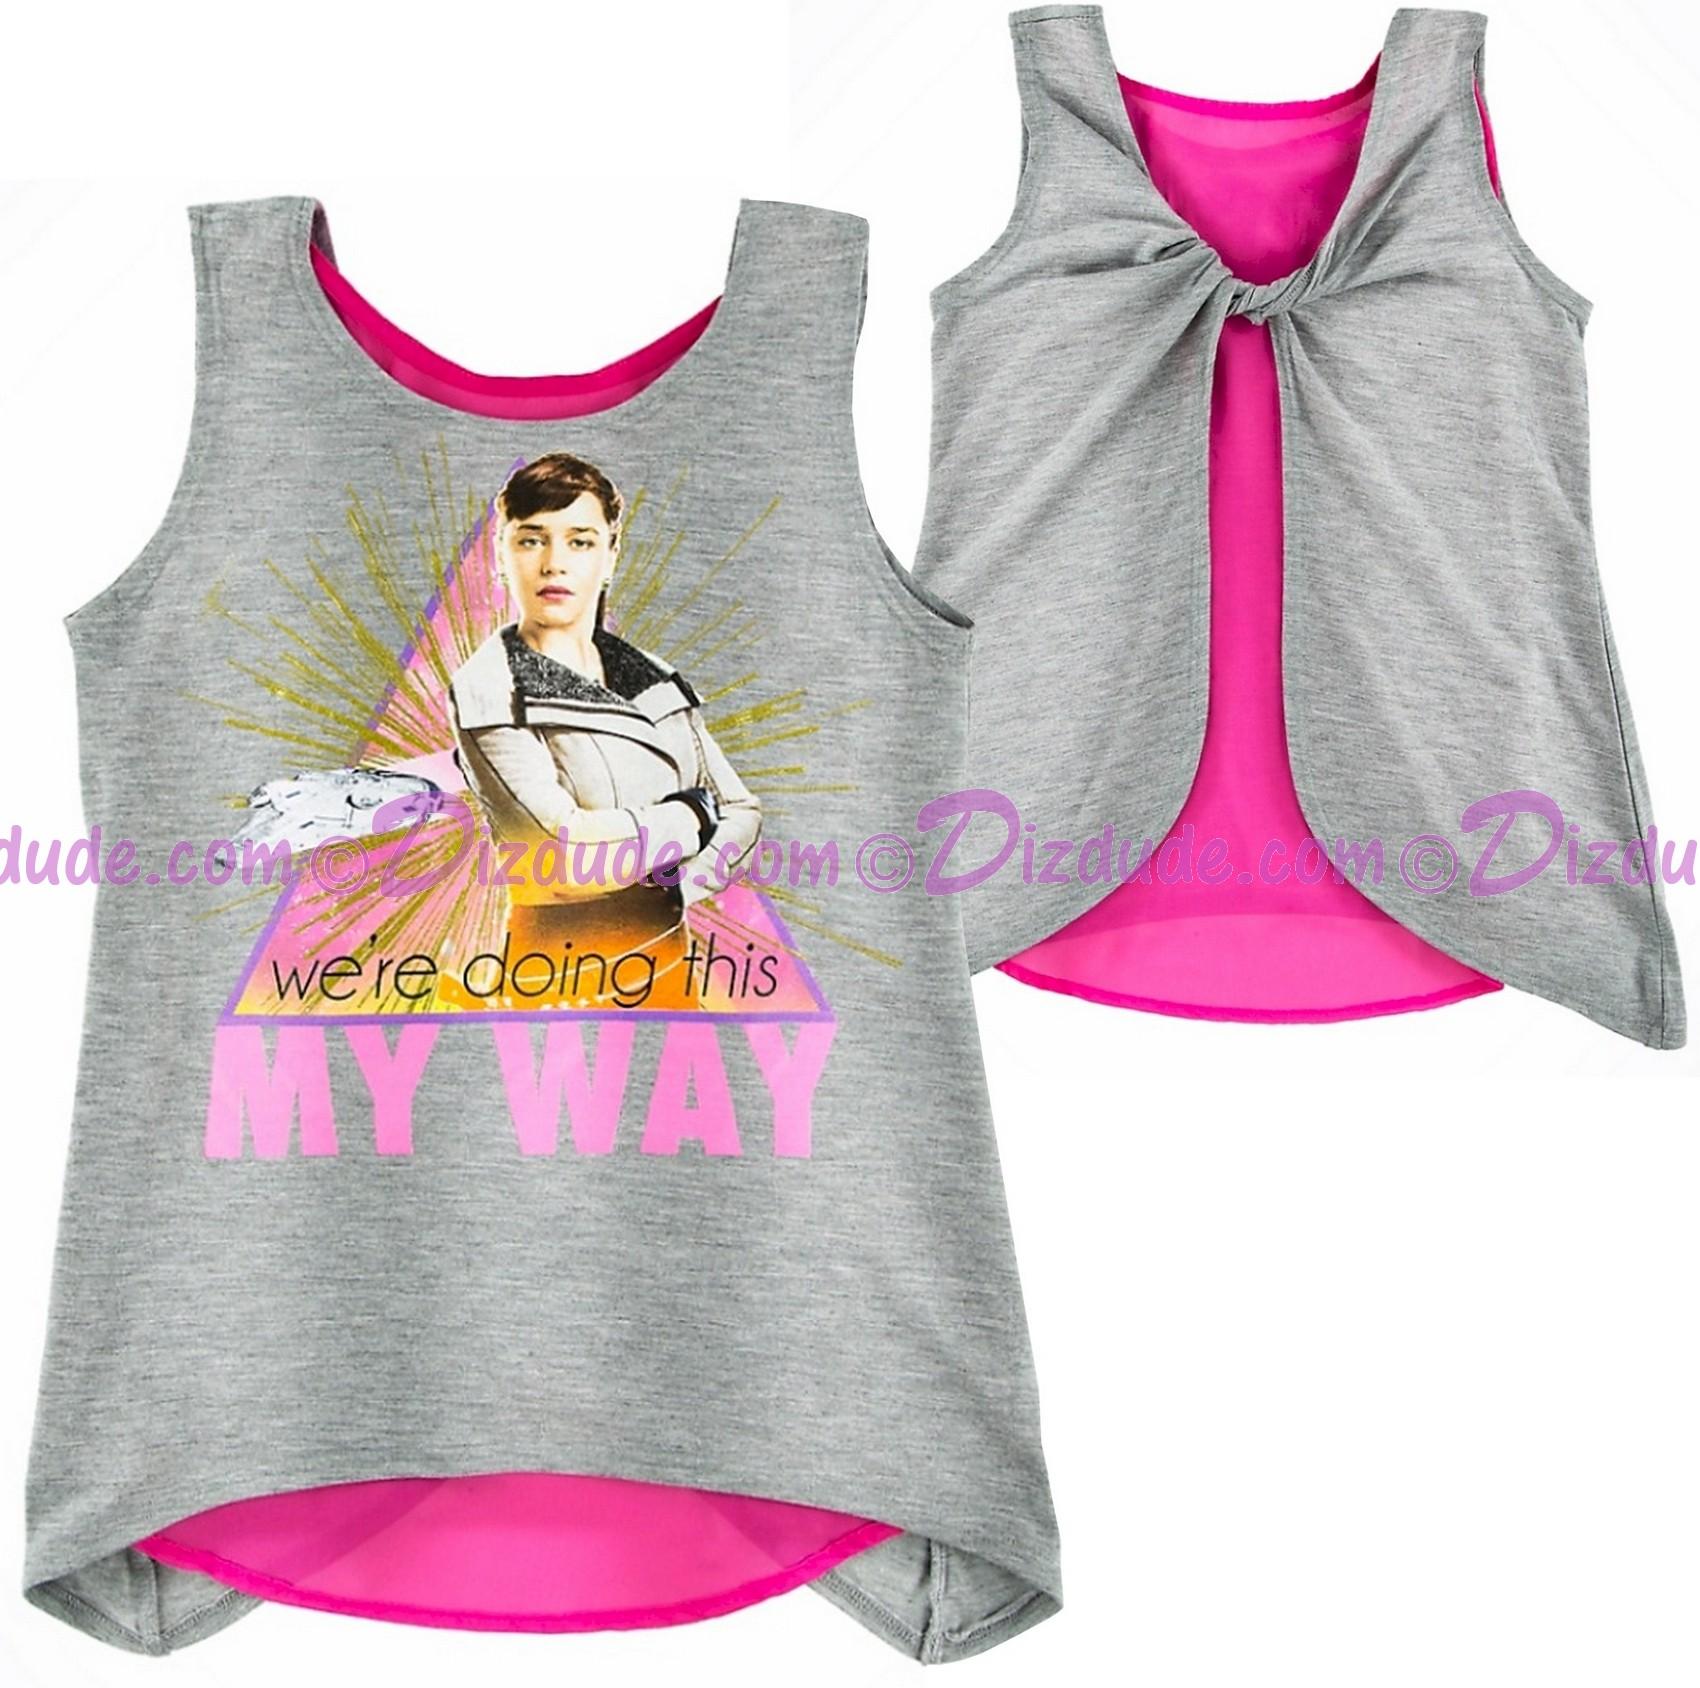 Disney SOLO A Star Wars Story Qi'ra We're Doing This My Way Youth Tank T-Shirt (Tshirt, T shirt or Tee) © Dizdude.com